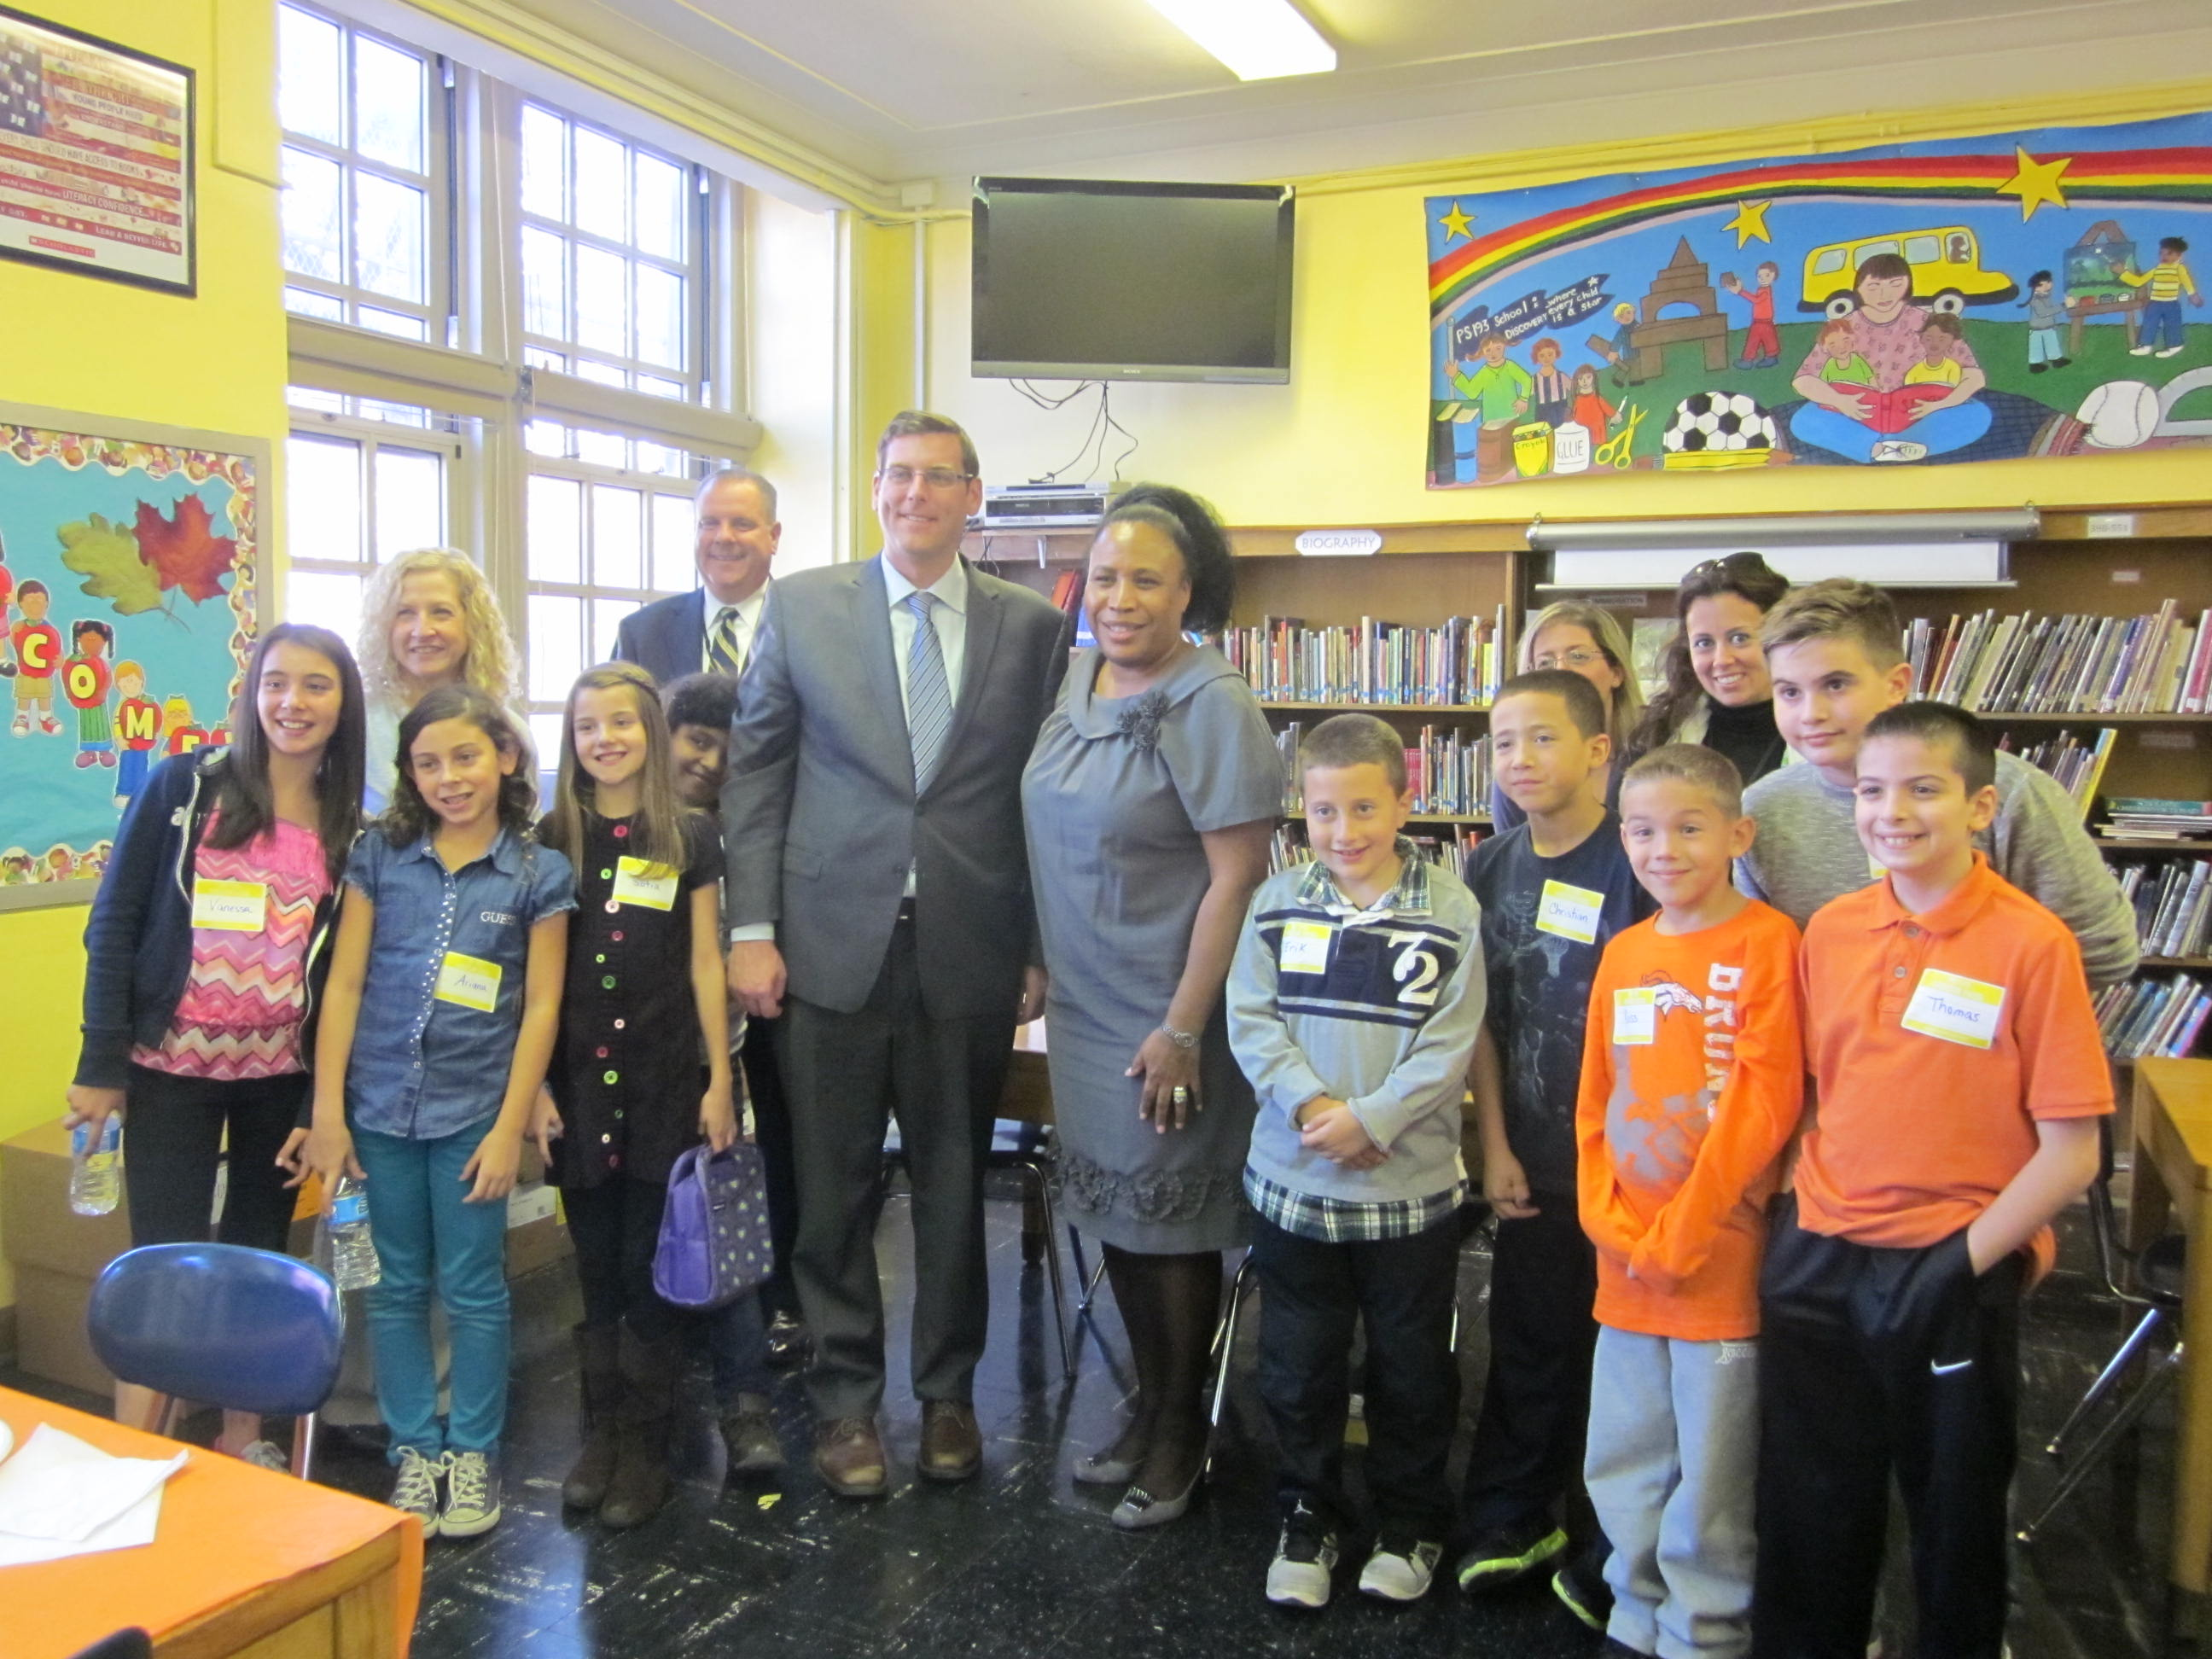 On Monday, October 28, 2013, Assemblyman Braunstein served as Principal for a Day at PS 193.